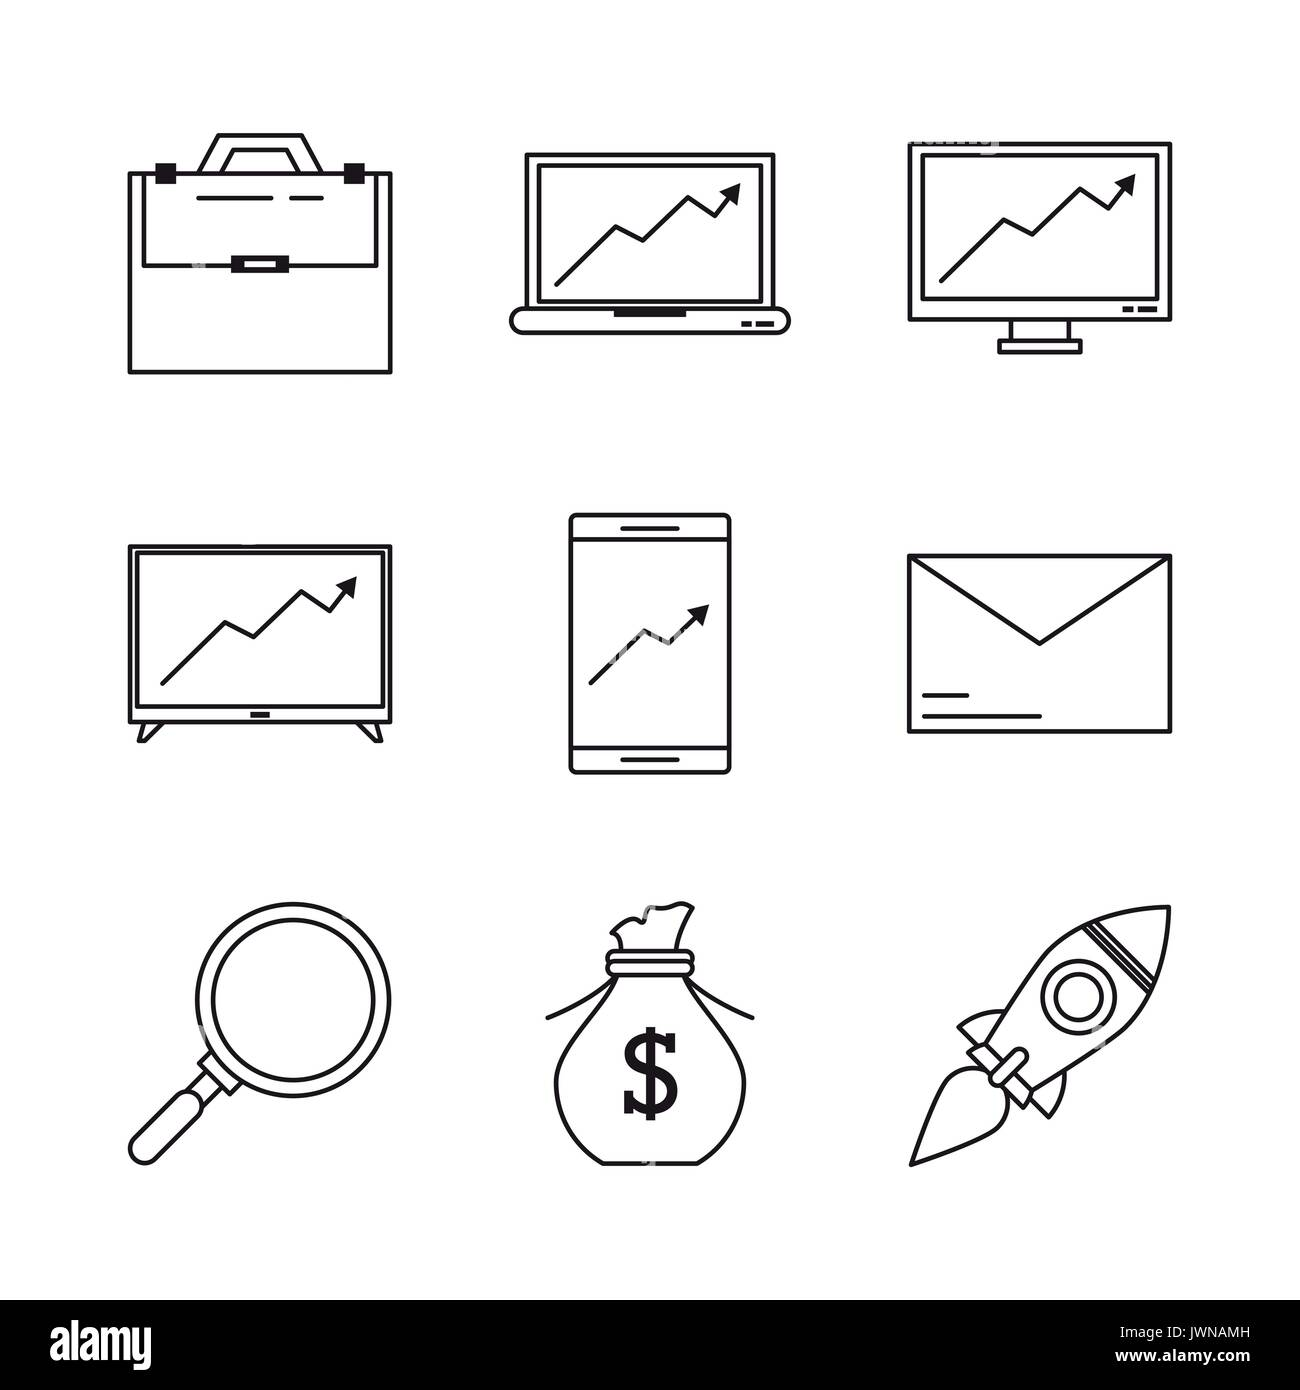 white background with monochrome icons related to crowd funding management - Stock Image